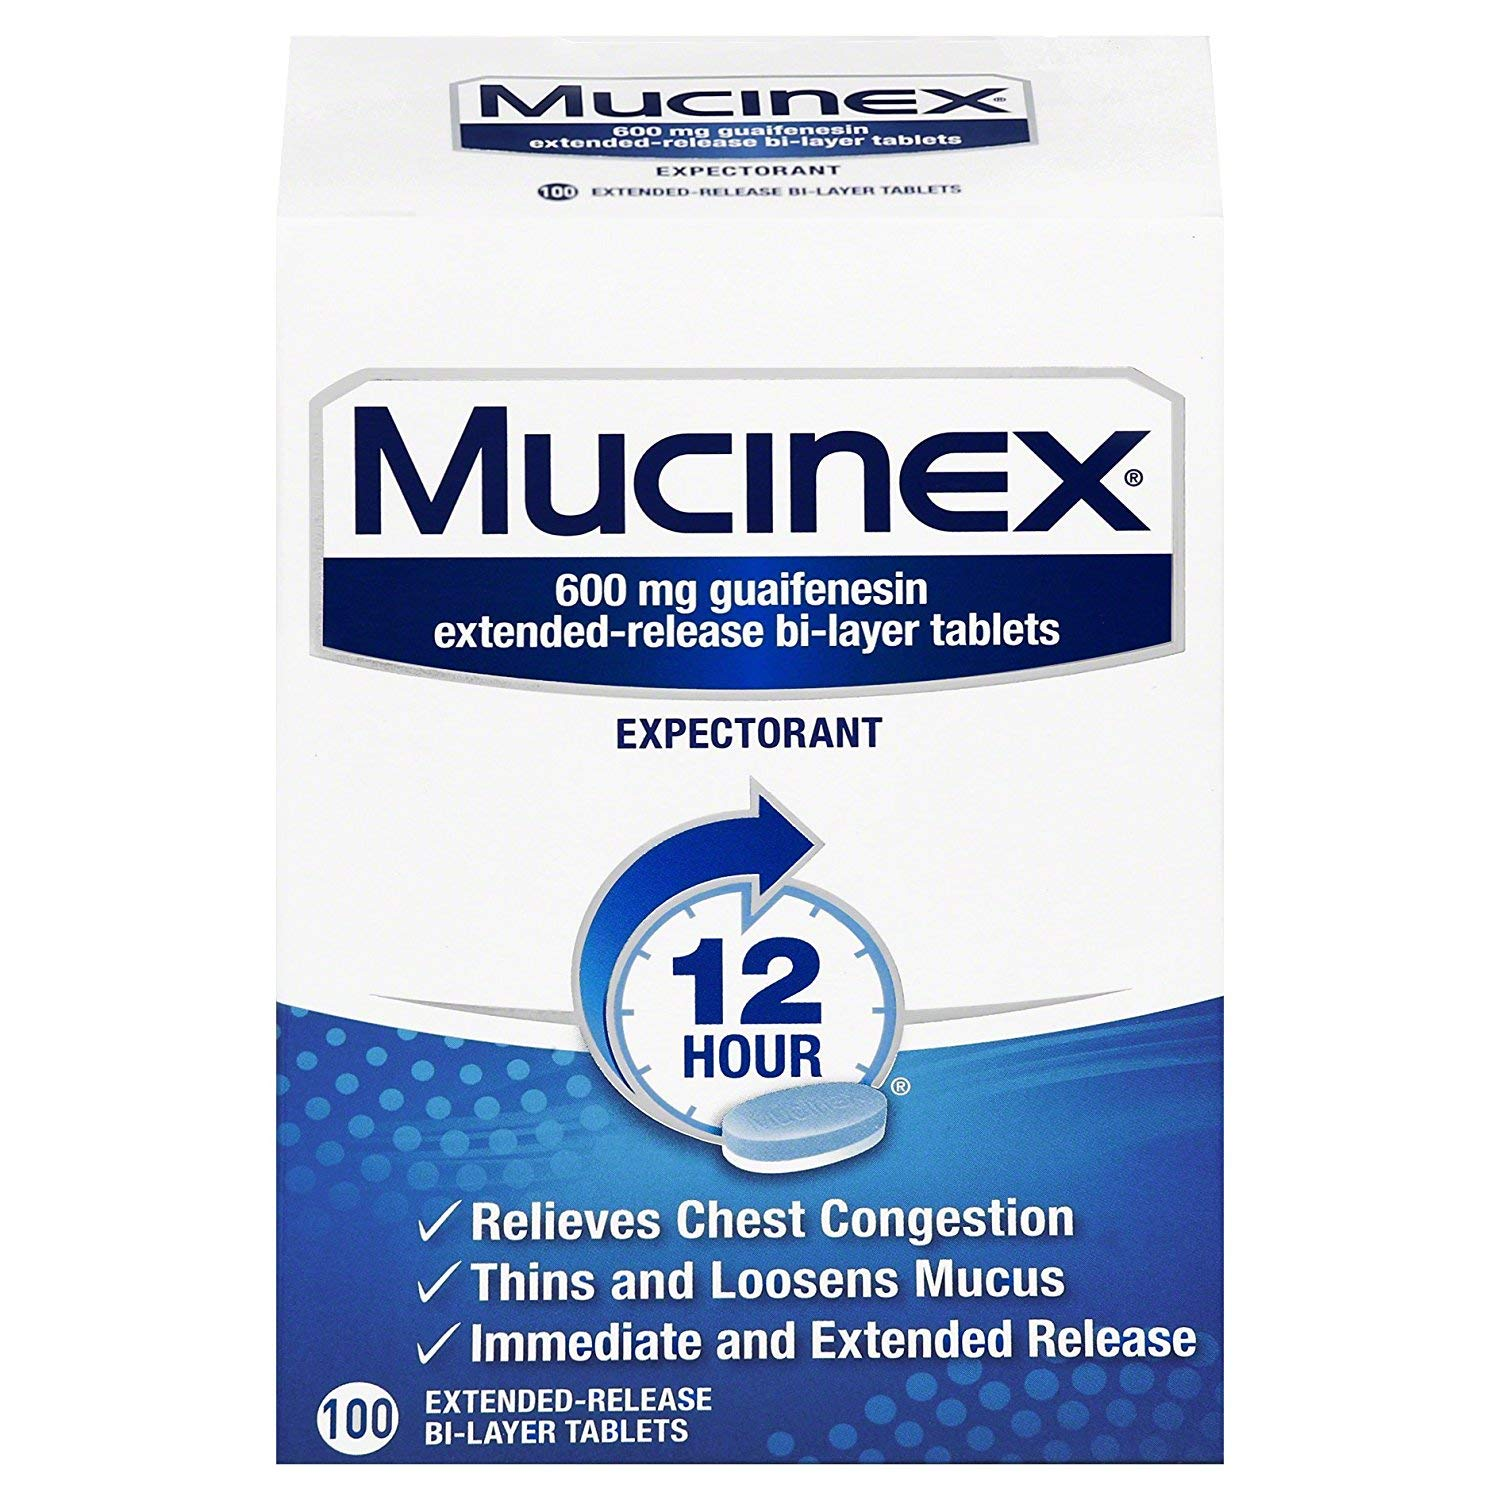 Chest Congestion, Mucinex 12 Hour Extended Release Tablets, 600 mg Guaifenesin with extended relief of  chest congestion caused by excess mucus, thins and loosens mucus, 100 Count by Mucinex